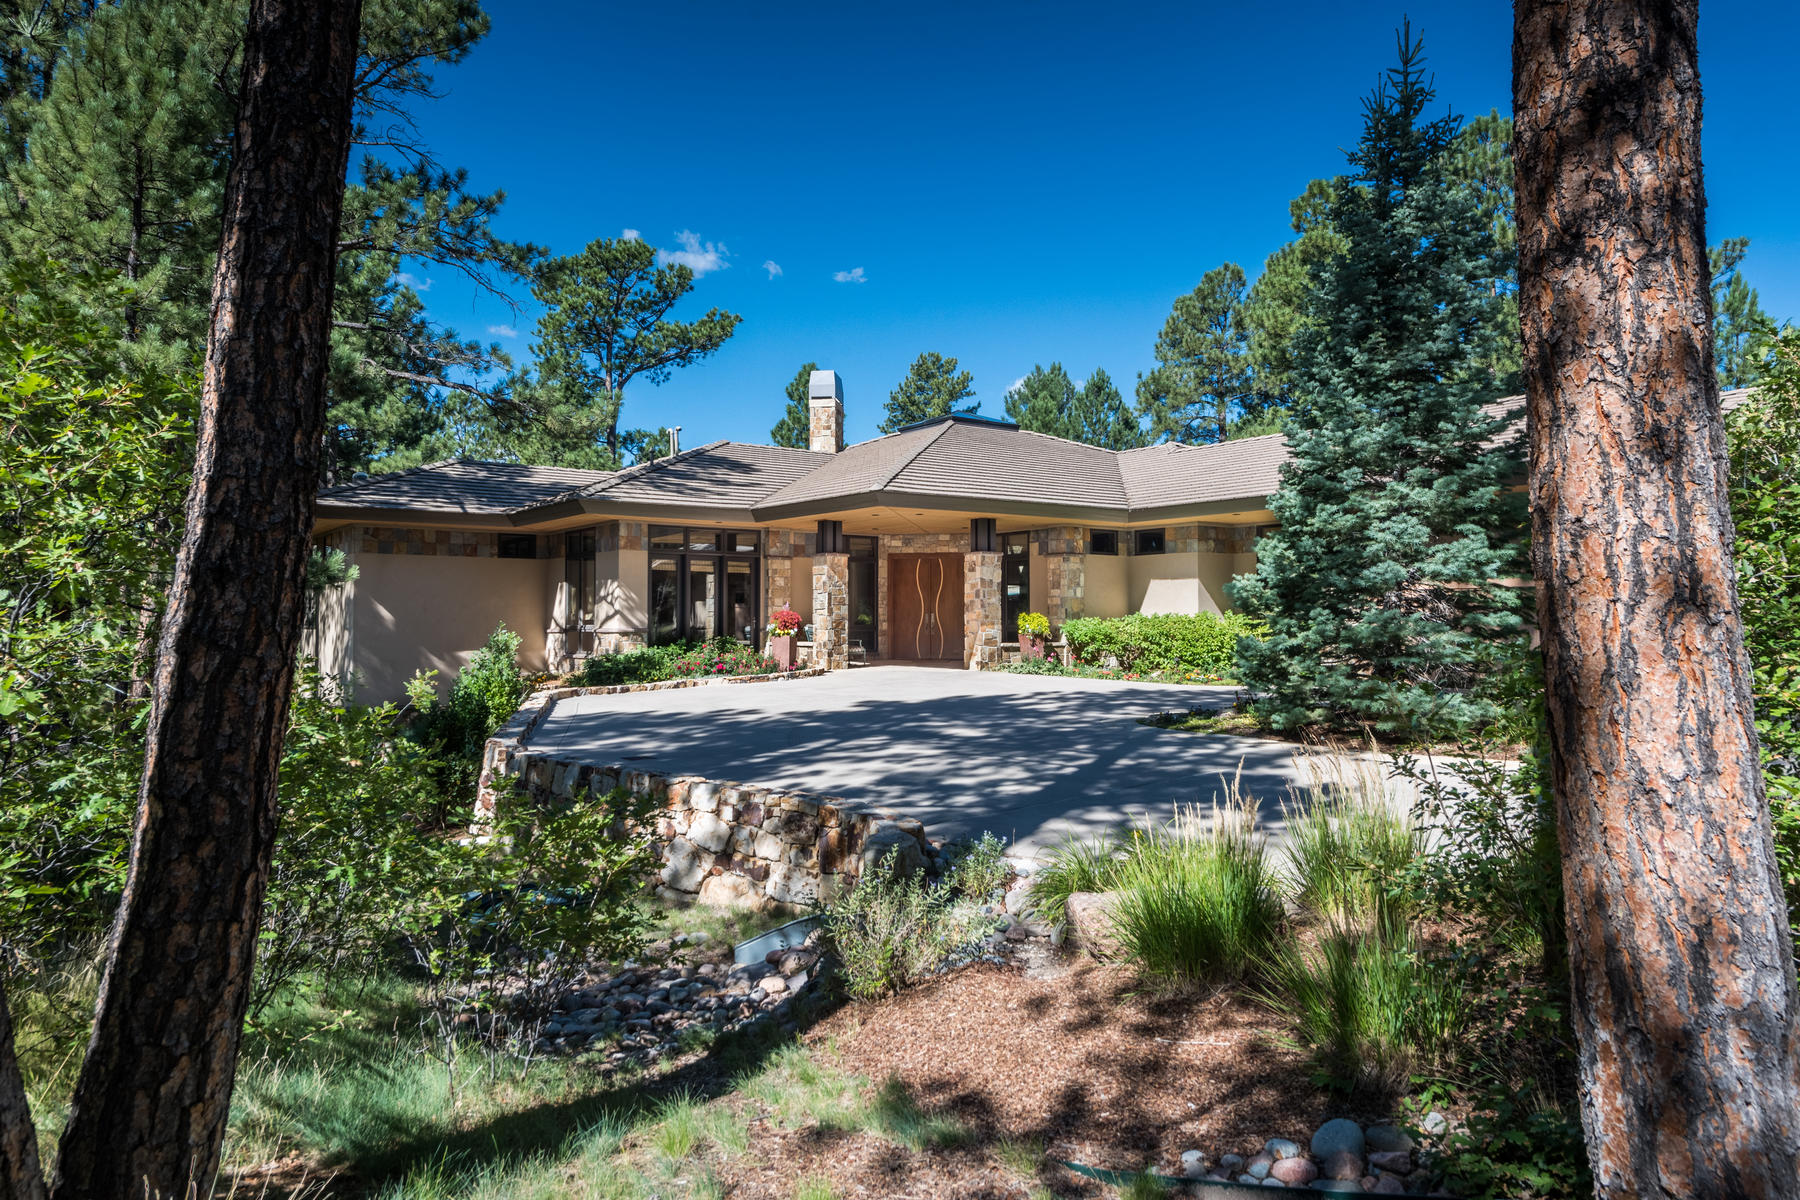 Additional photo for property listing at 70 Indigo Way 70 Indigo Way Castle Rock, Colorado 80108 United States